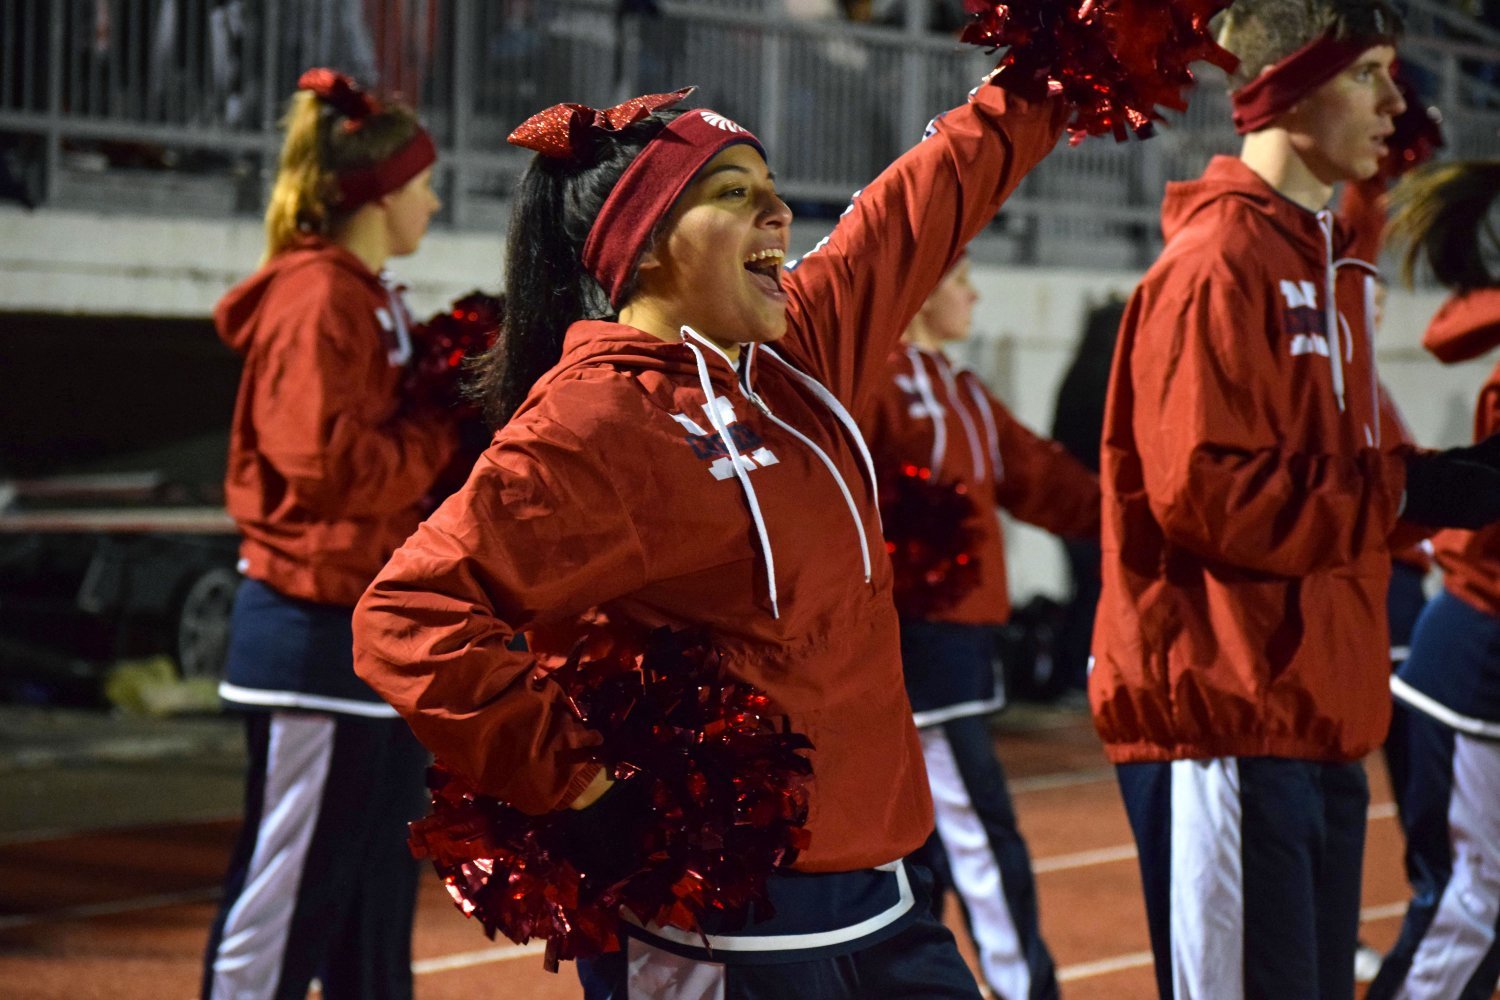 Senior Mya Brown cheers on the MHS Indians on the sidelines of the Junction City game. The cheerleaders took a break from their normal uniforms to stay warm for the cold game on Oct. 11, wearing instead pullovers, sweats, and gloves. The final score of the game was 31-28 another win for the MHS varsity team. Photo by Hailey Eilert.